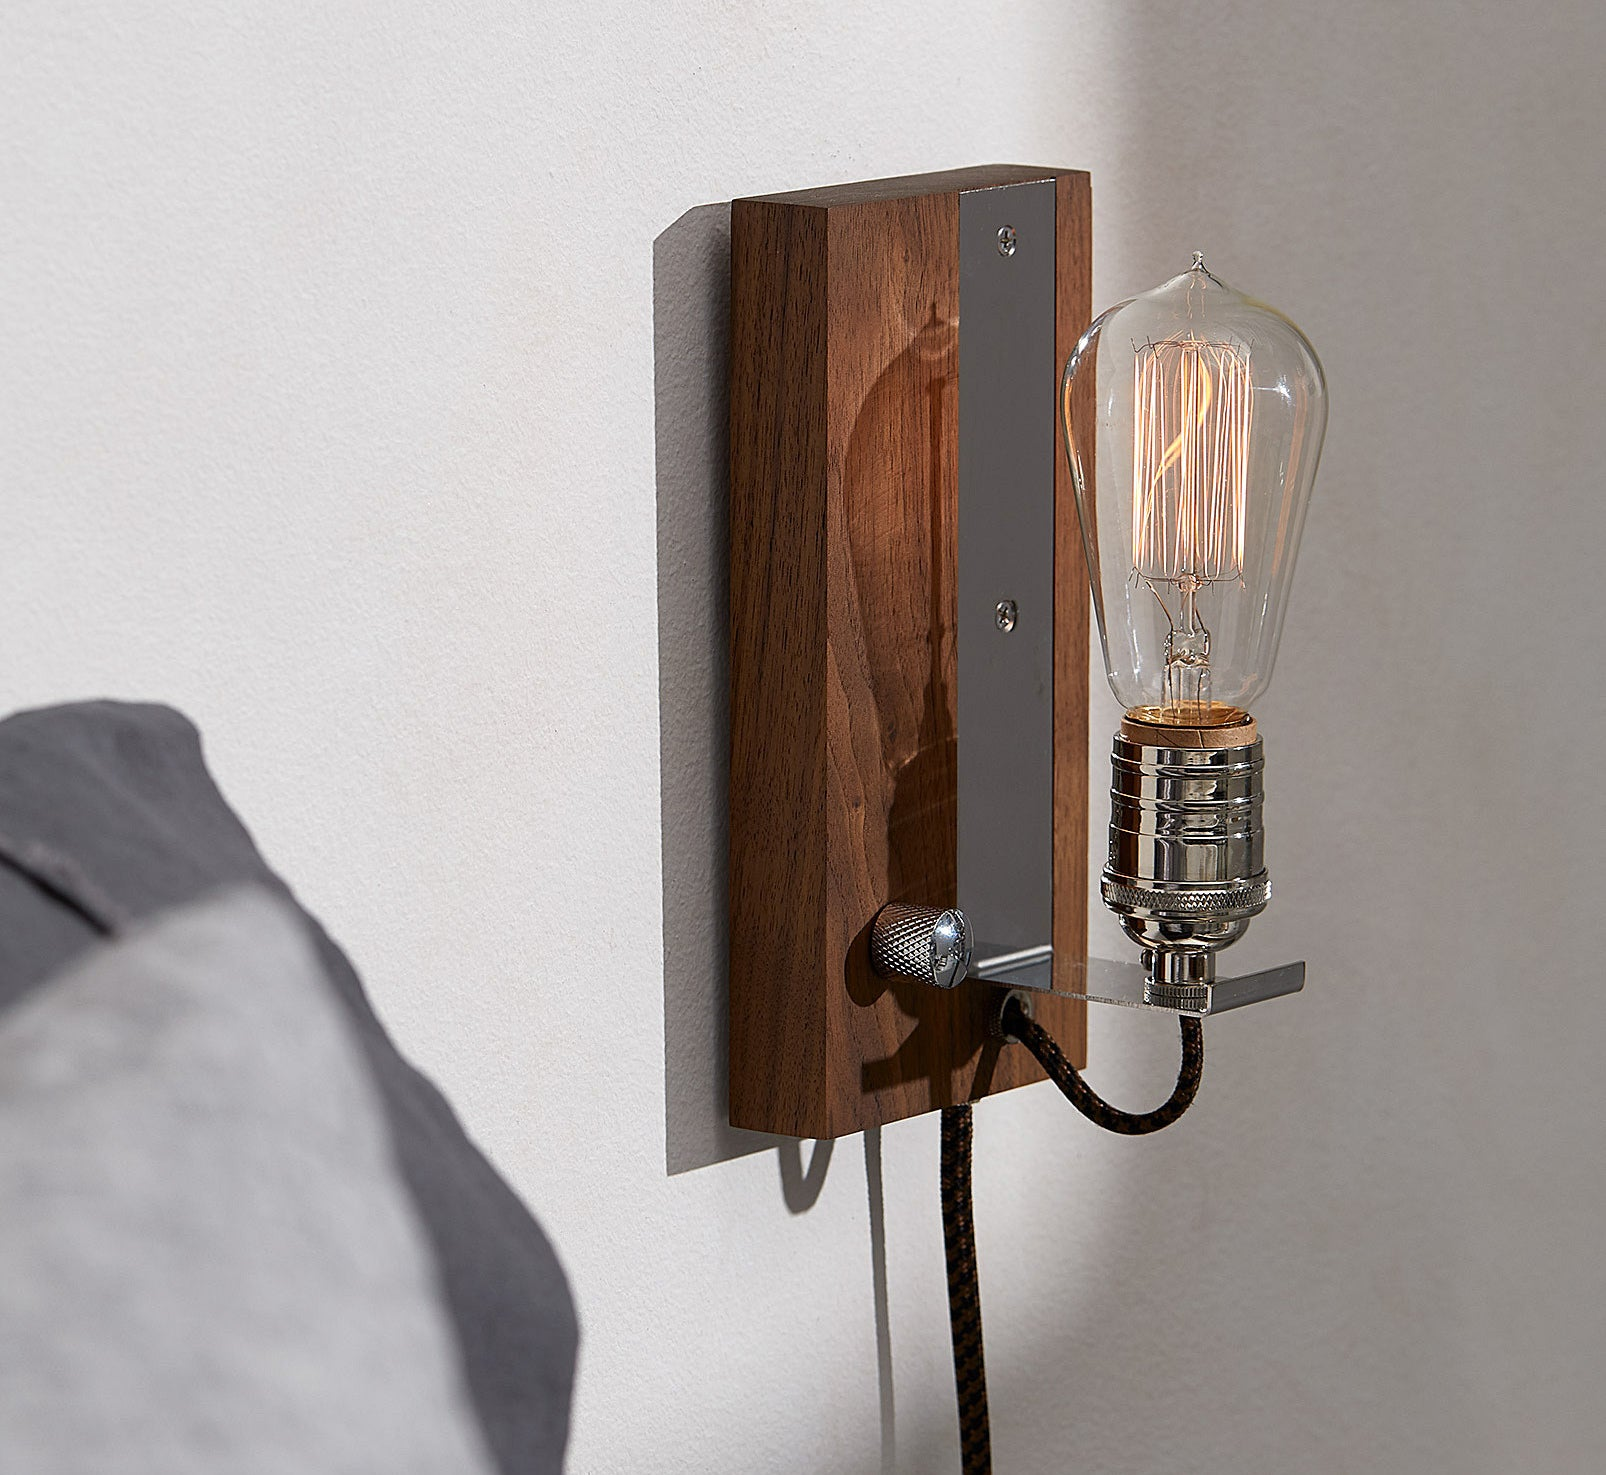 The vintage sconce mounted on a wall with the Edison bulb dimmed down